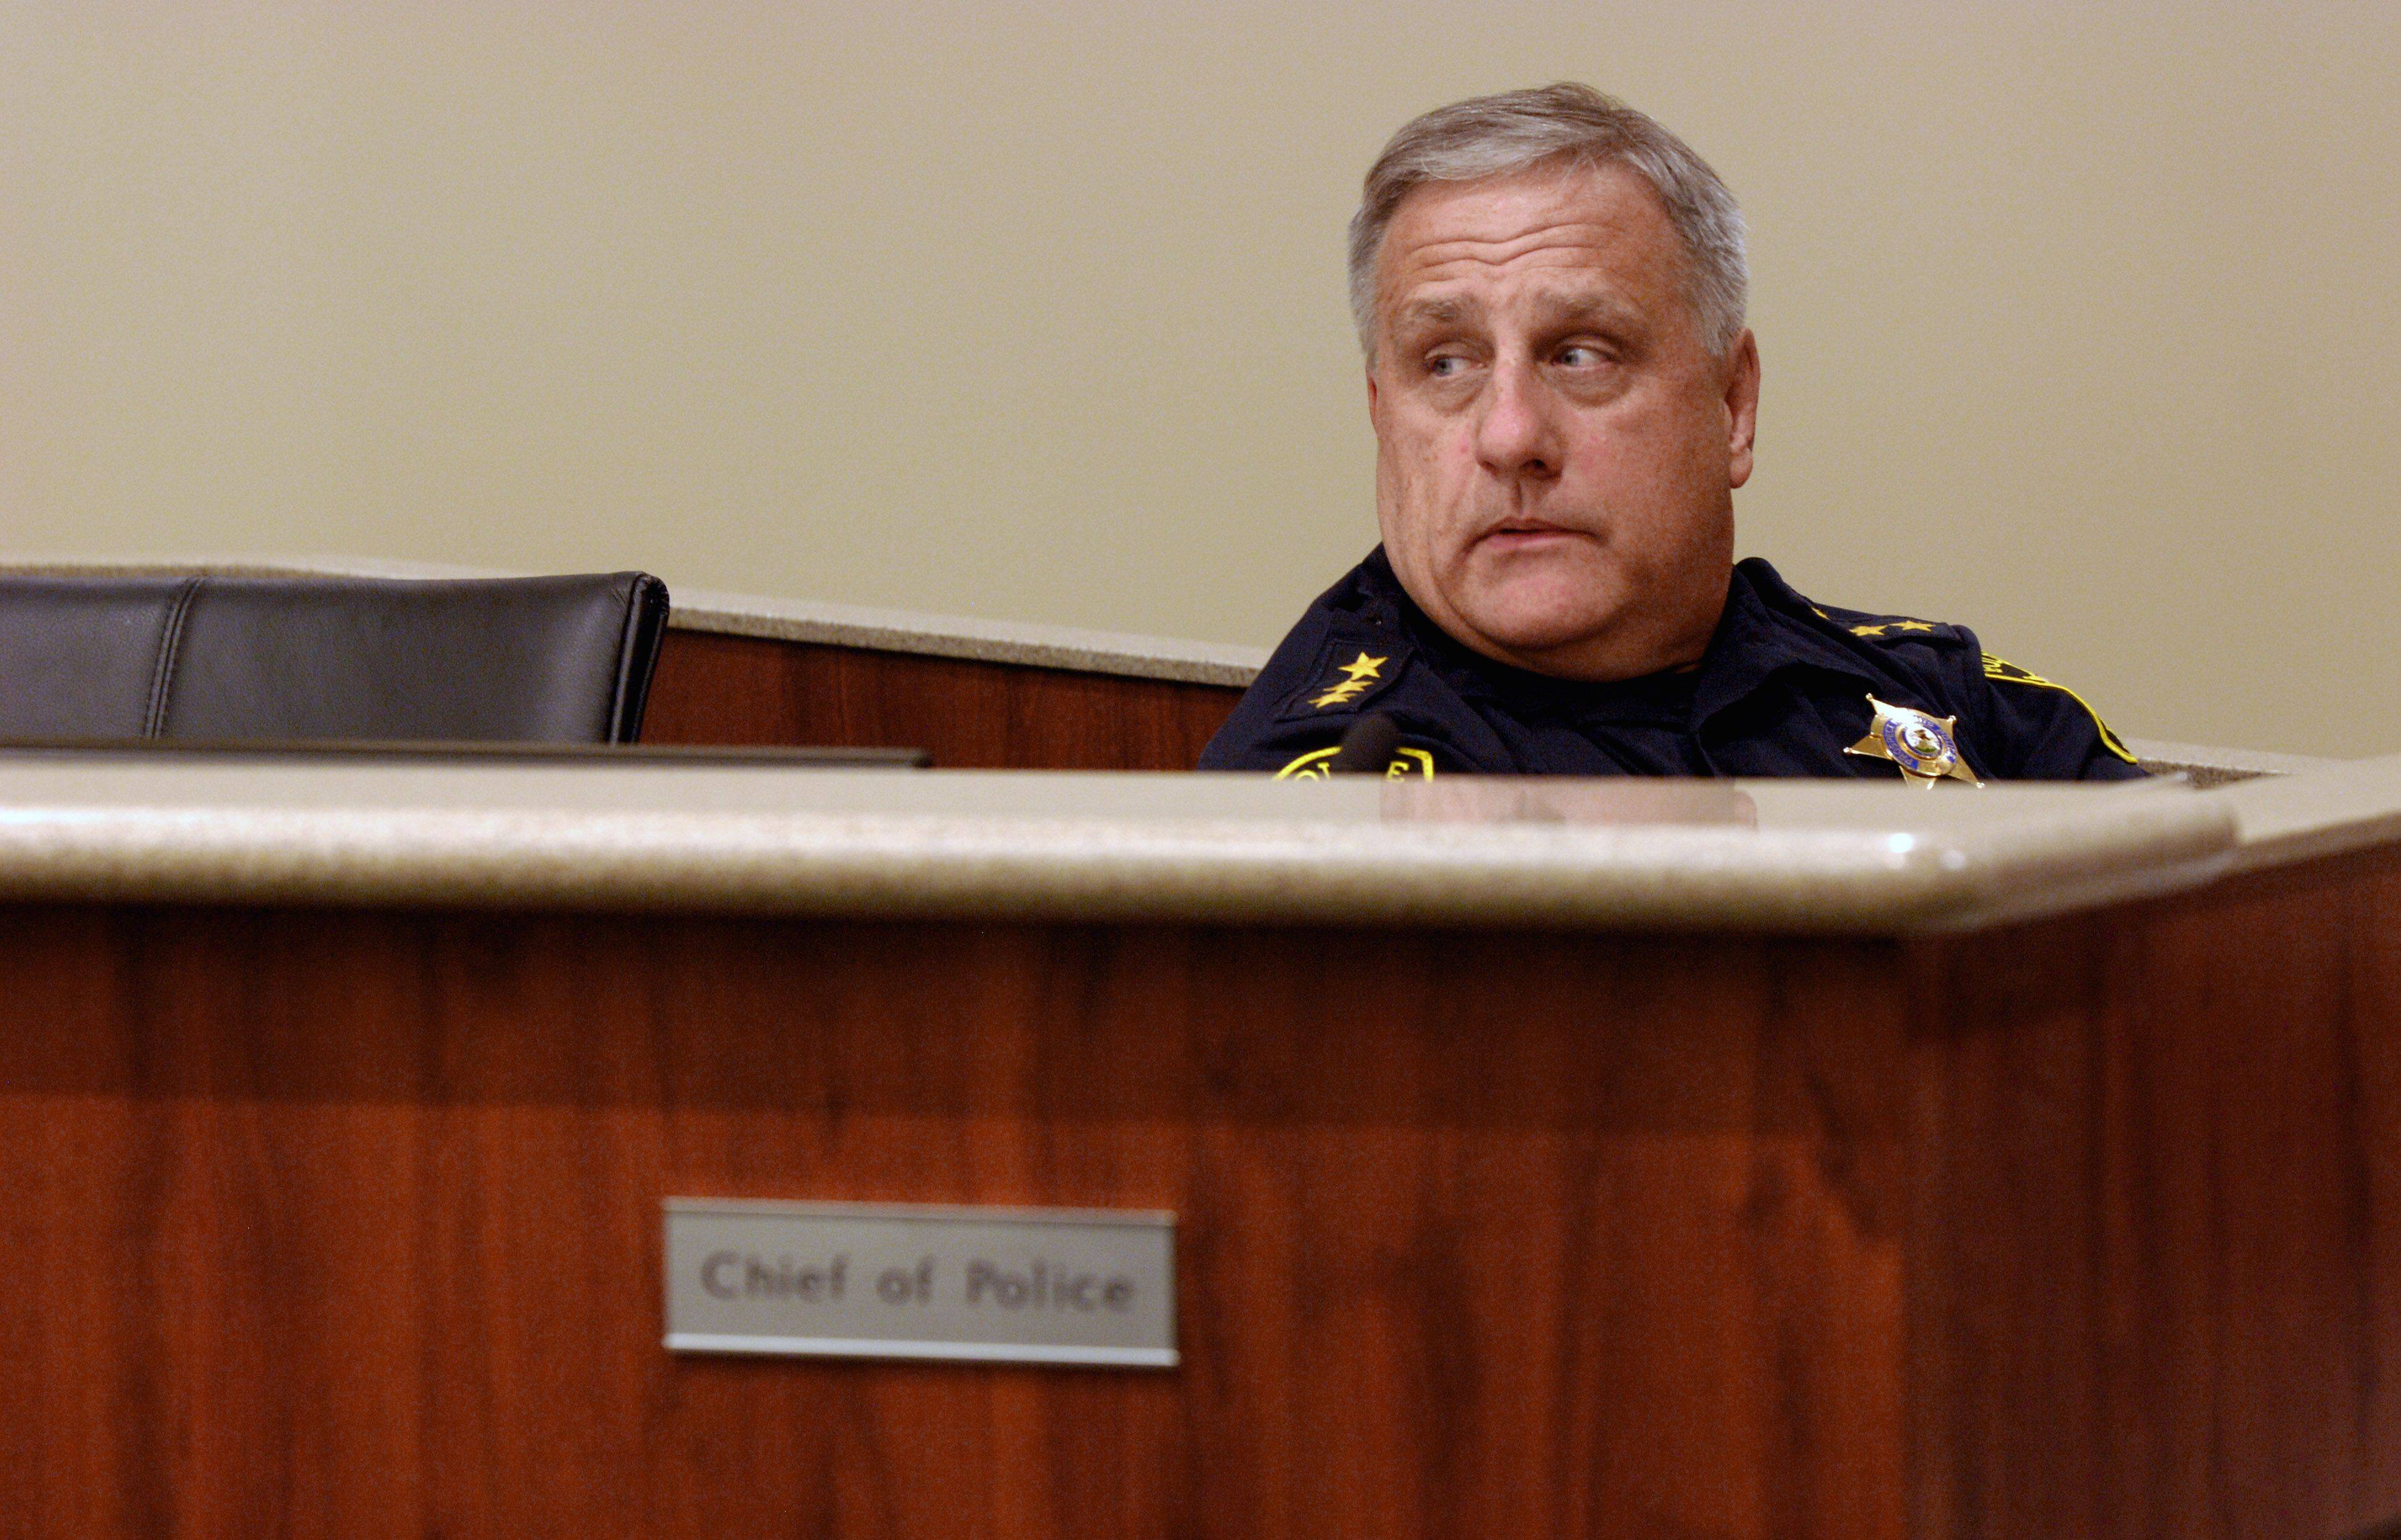 Former Prospect Heights Police Chief Bruce Morris waits for the city council to come out of a closed session discussion about possible police layoffs on Monday night. Morris abruptly resigned Wednesday afternoon after 20 years on the force, 12 as chief.